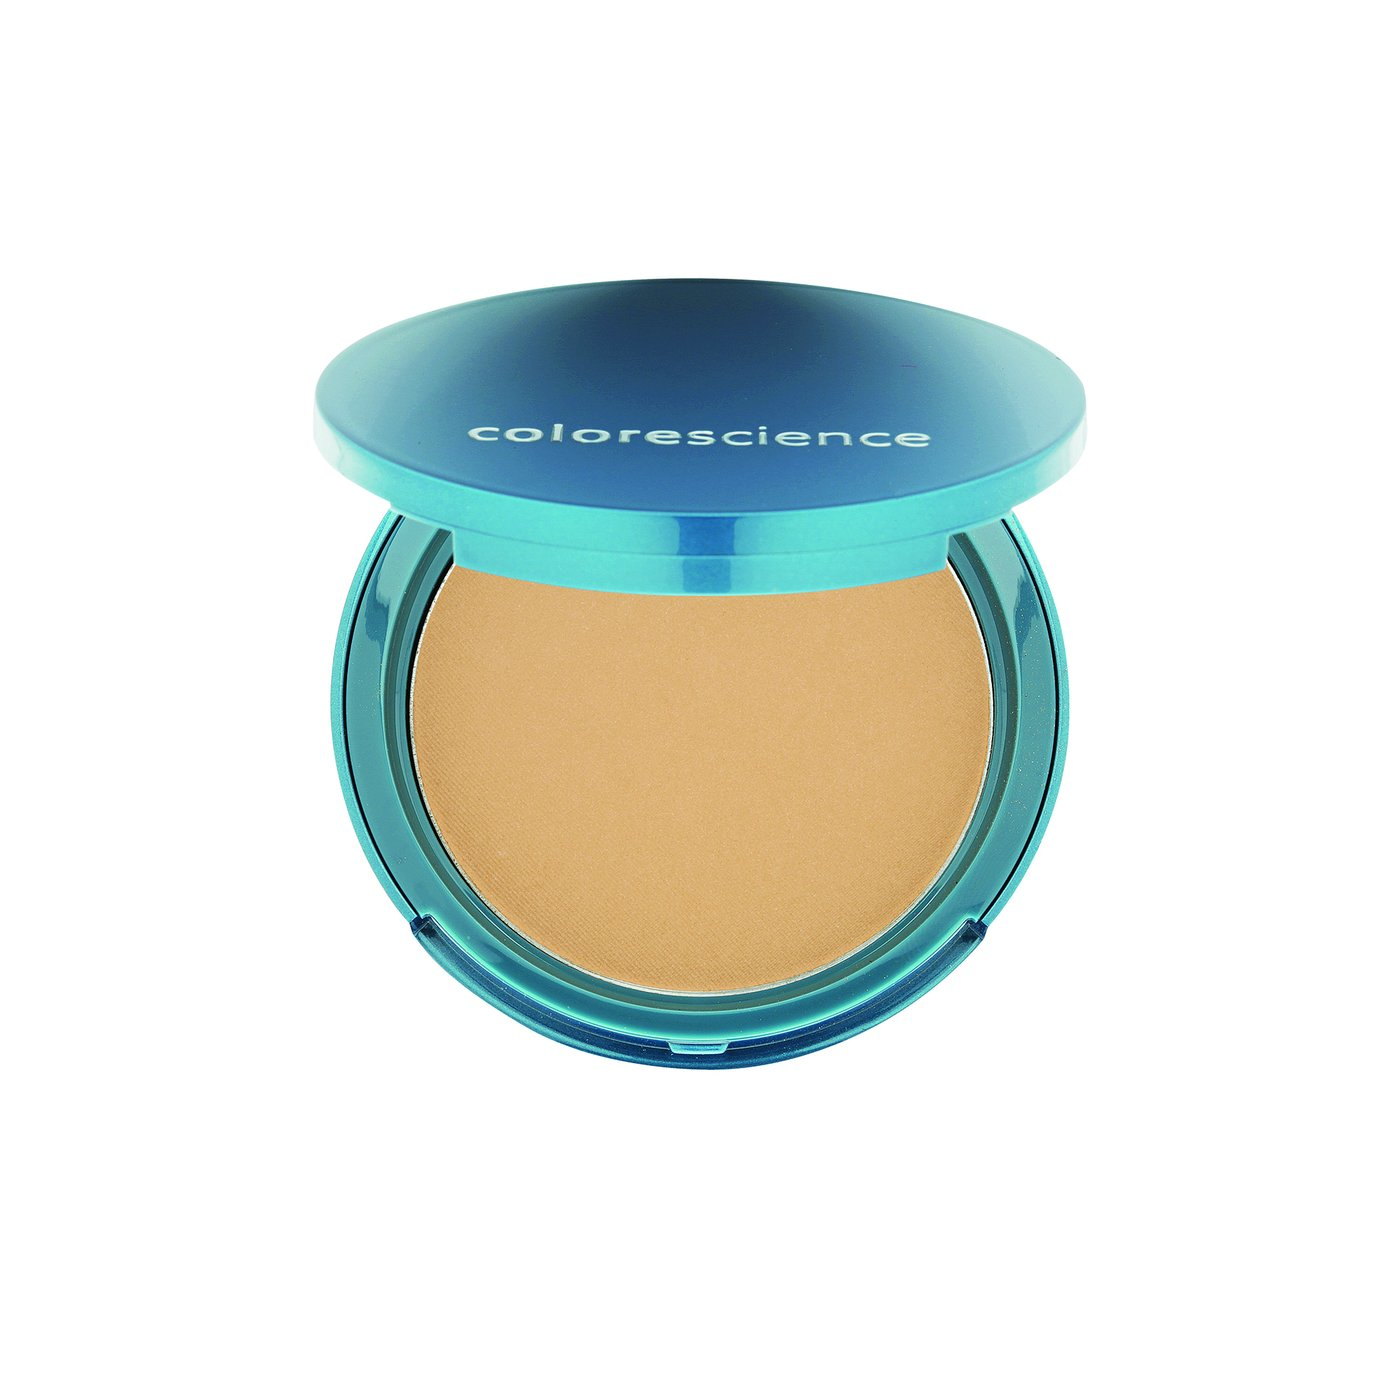 Colorescience Pressed Mineral Foundation Hux Beauty